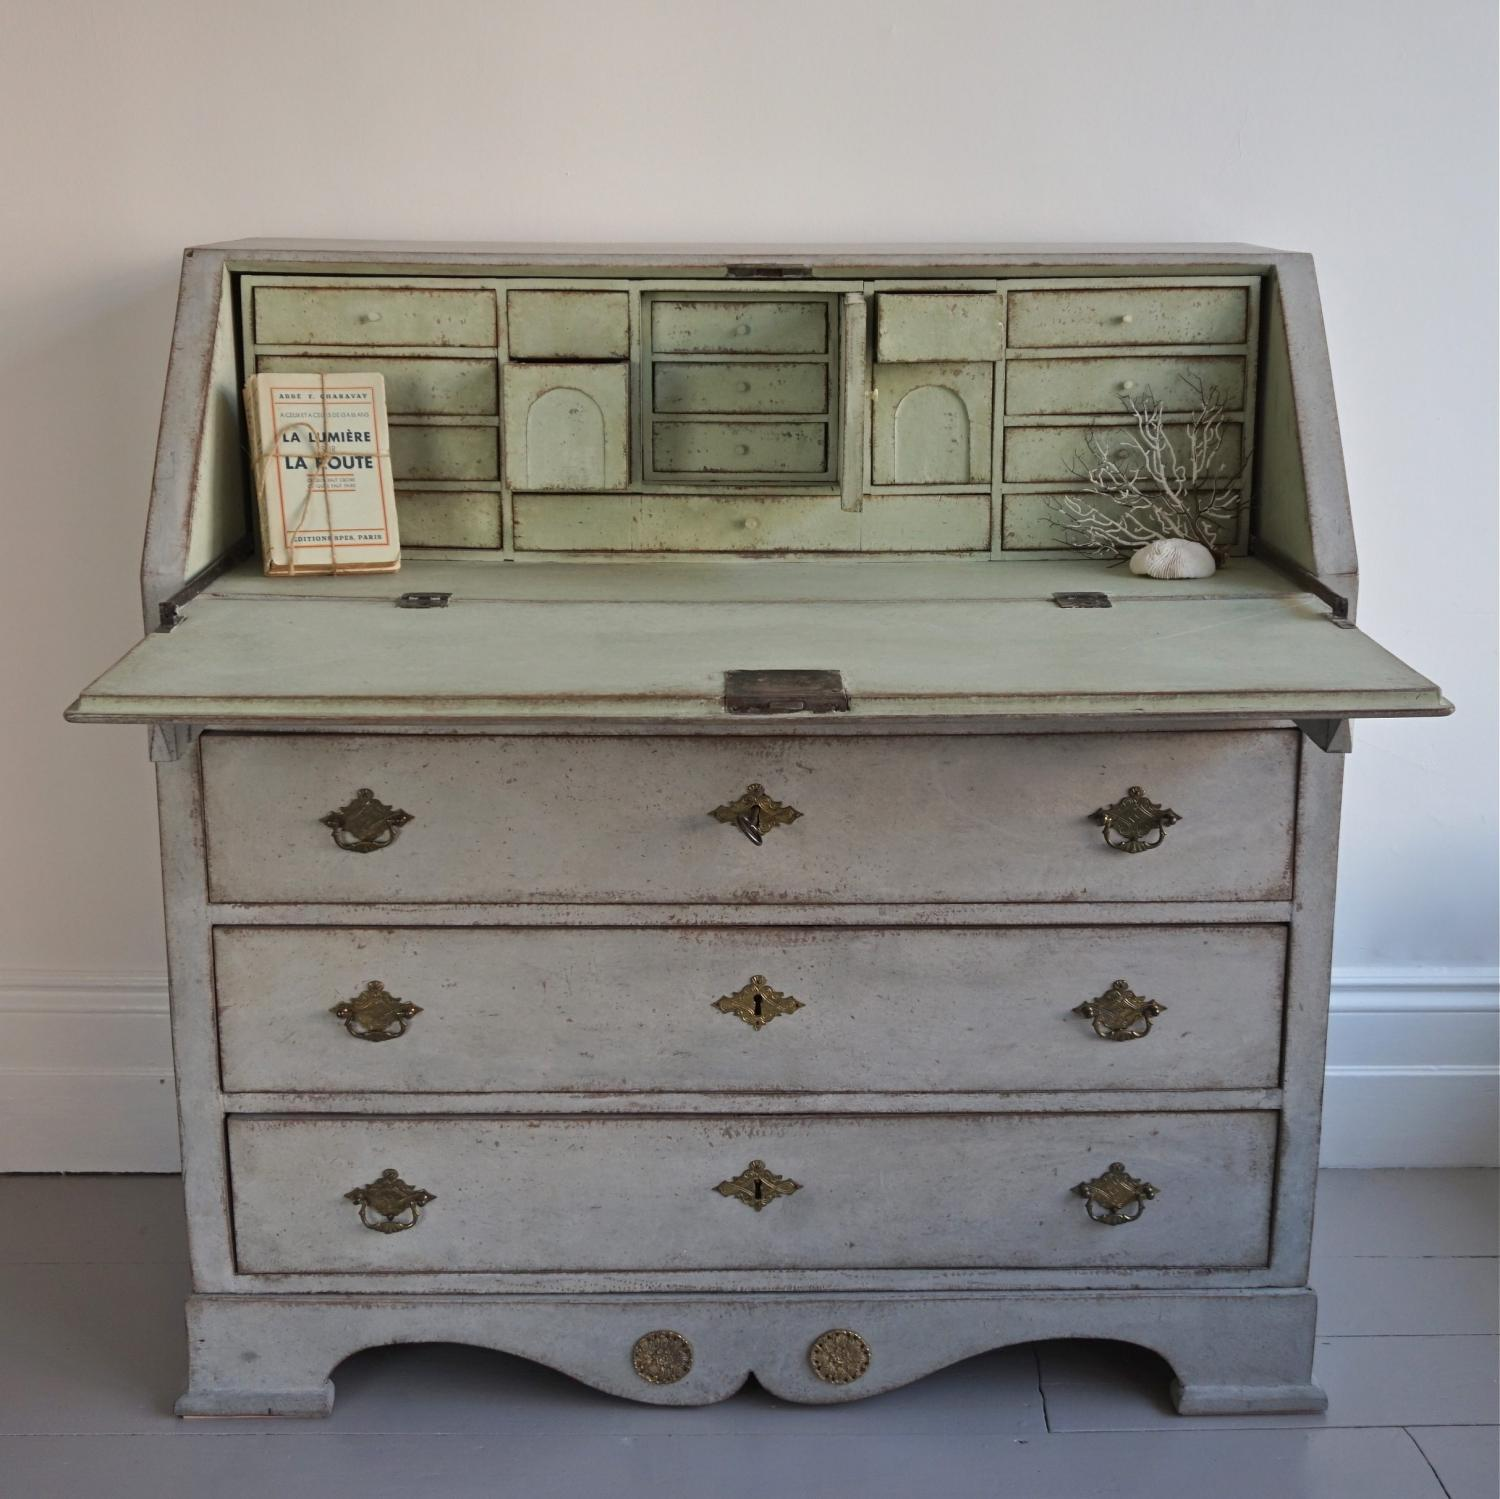 VERY FINE EARLY 19TH CENTURY SWEDISH BUREAU